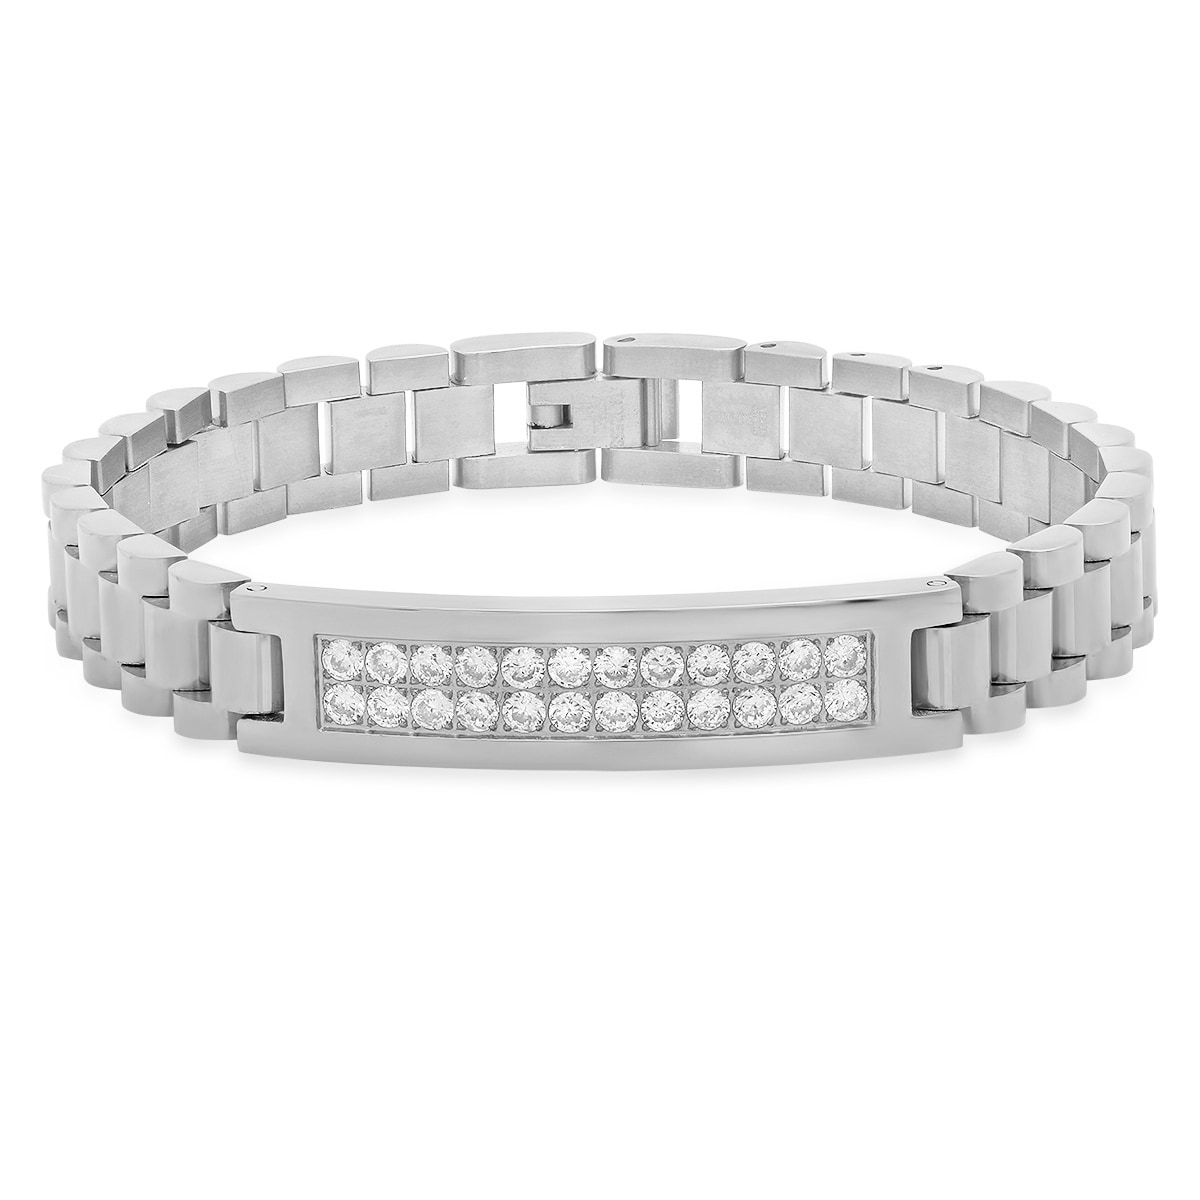 a78bc998939d7 Shop Steeltime Men's Stainless Steel Chain Link Bracelet with Cubic  Zirconia in 2 Colors - On Sale - Free Shipping On Orders Over $45 -  Overstock - 18540653